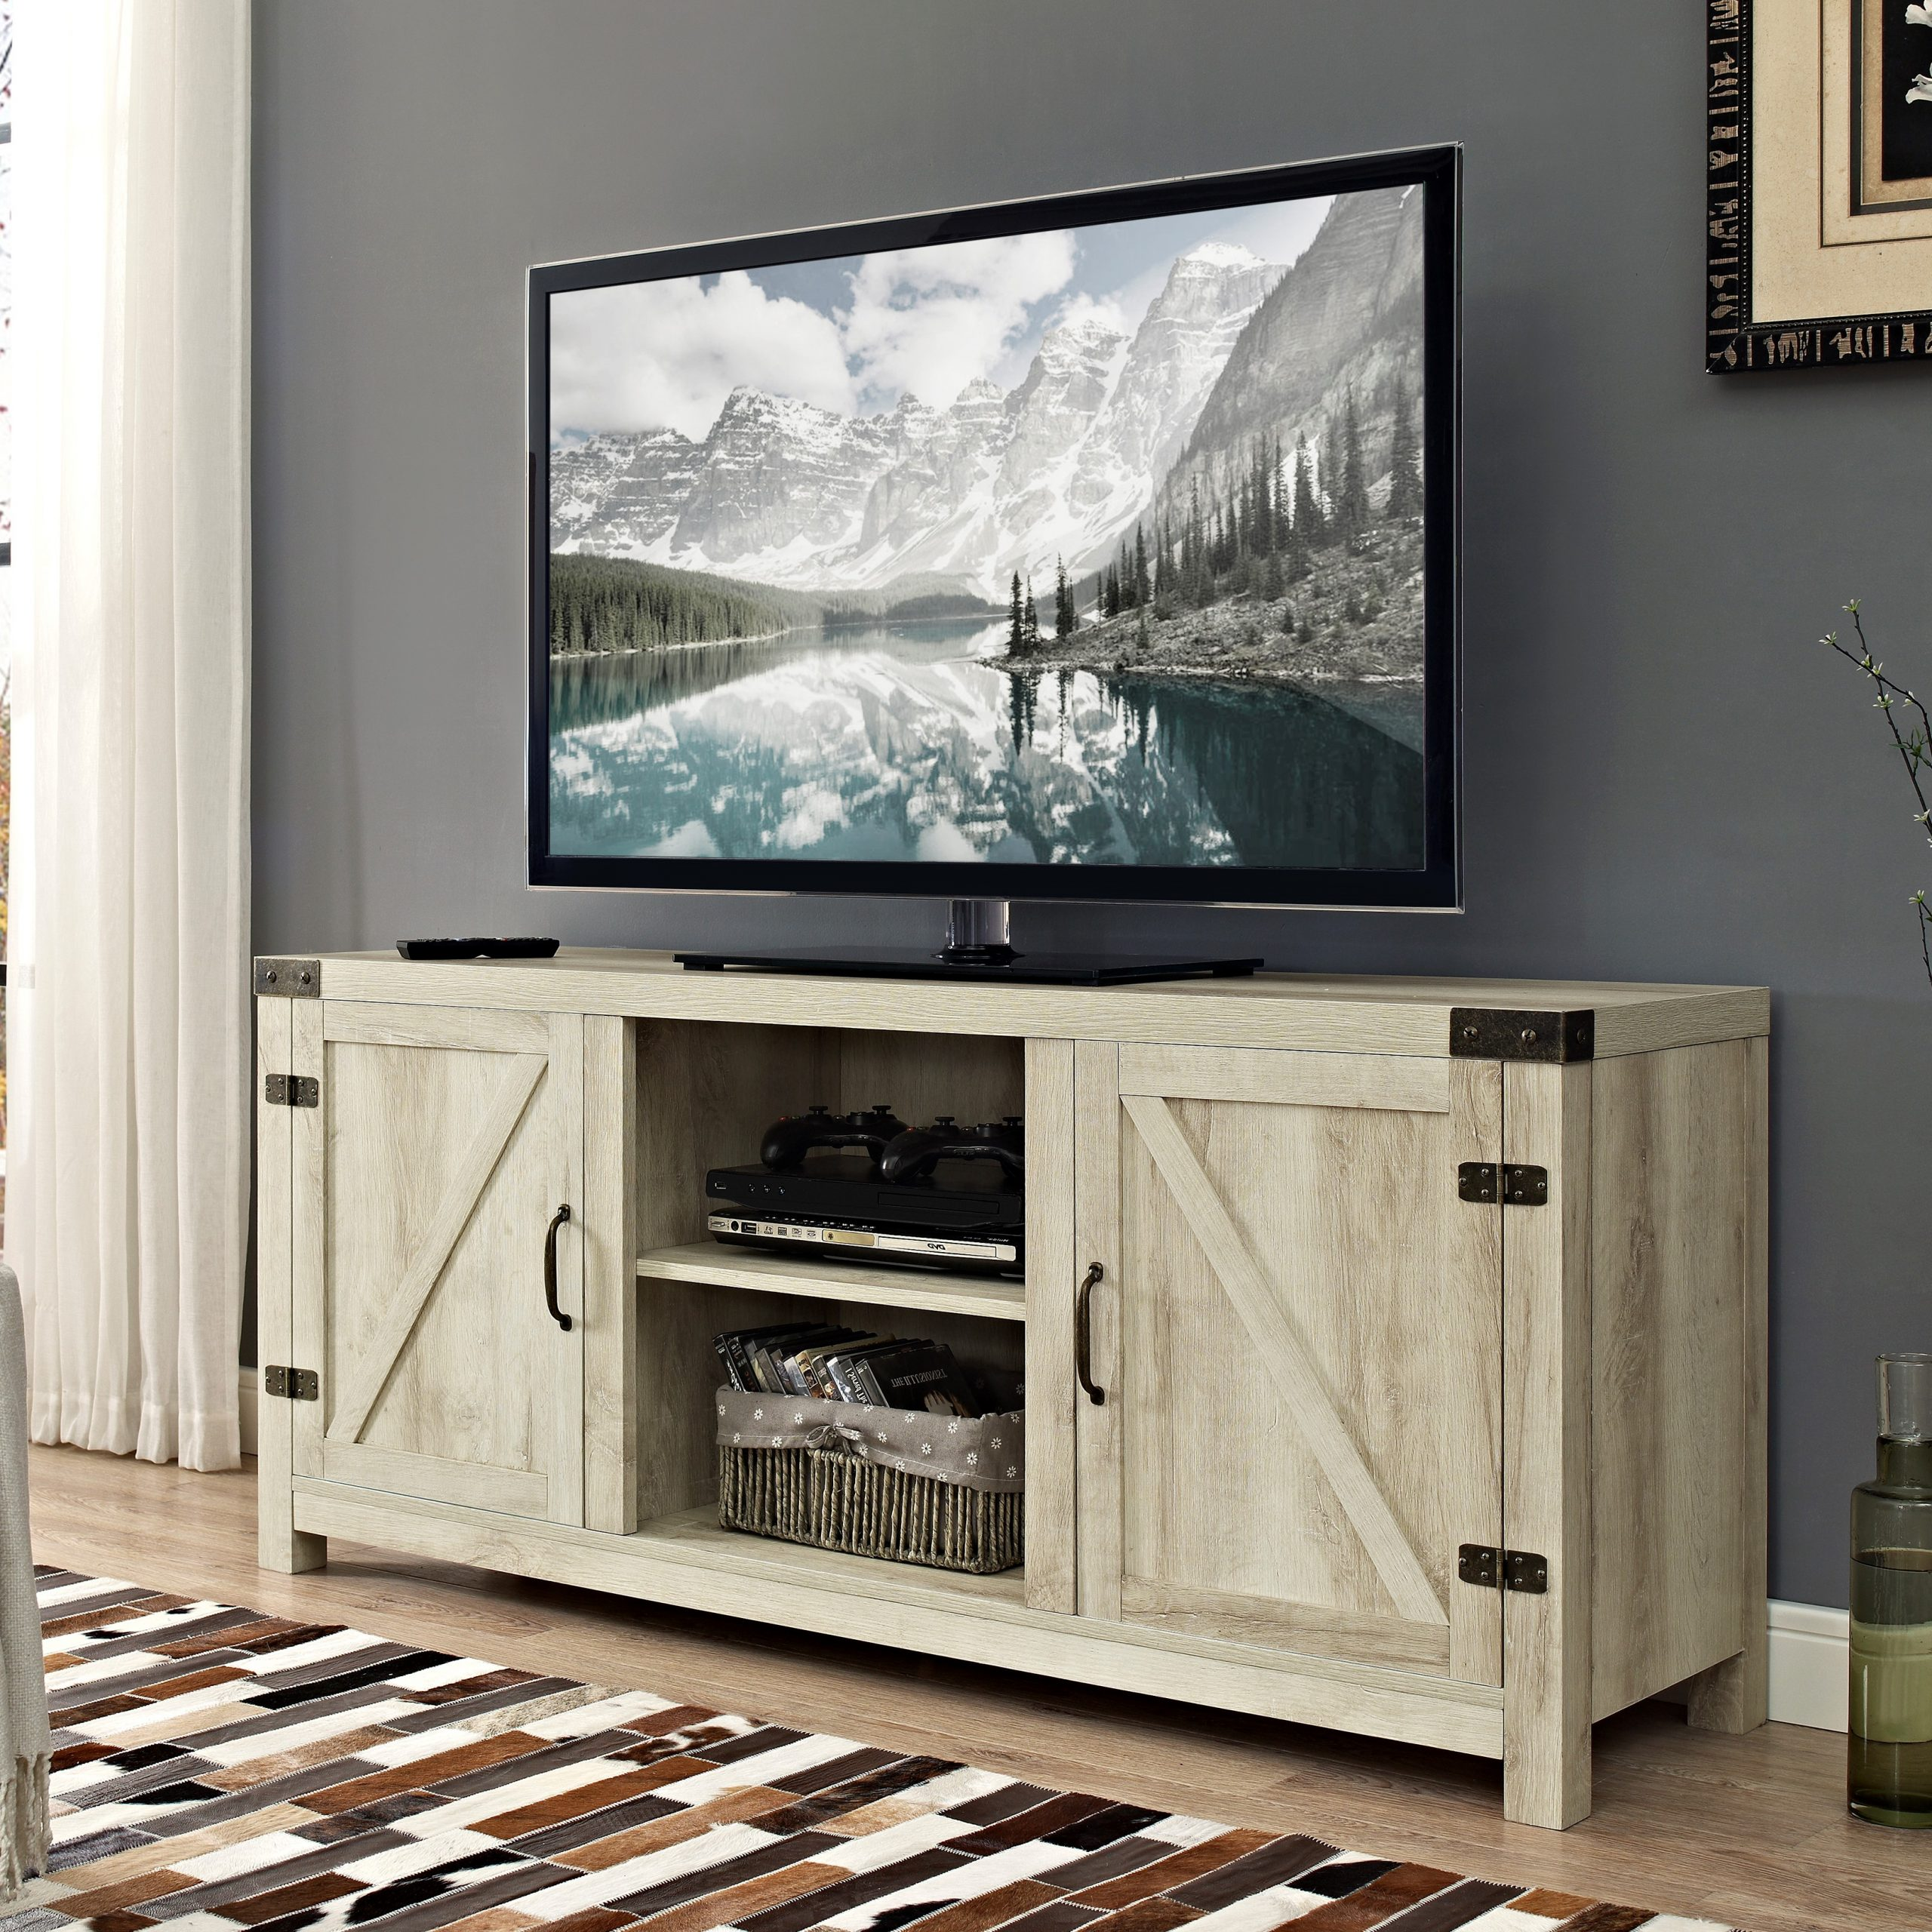 """Most Recent Woven Paths Modern Farmhouse Barn Door Tv Stand For Tvs Up Inside Betton Tv Stands For Tvs Up To 65"""" (View 4 of 25)"""